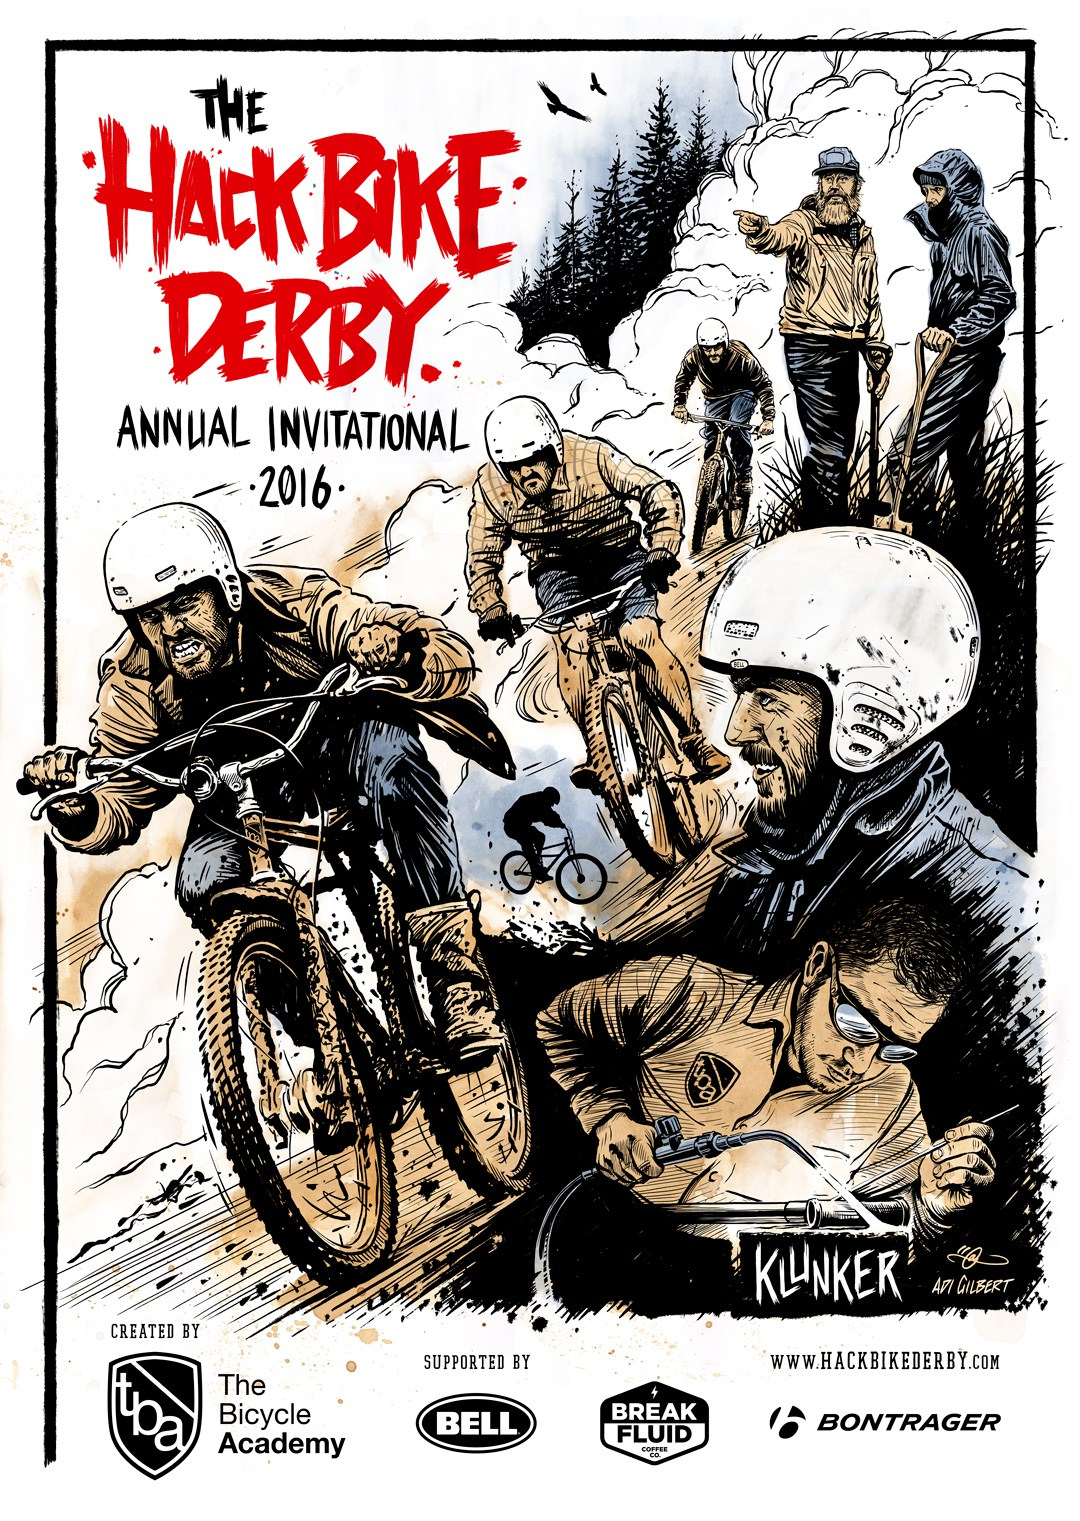 Hack Bike Derby Poster By Adi Gilbert